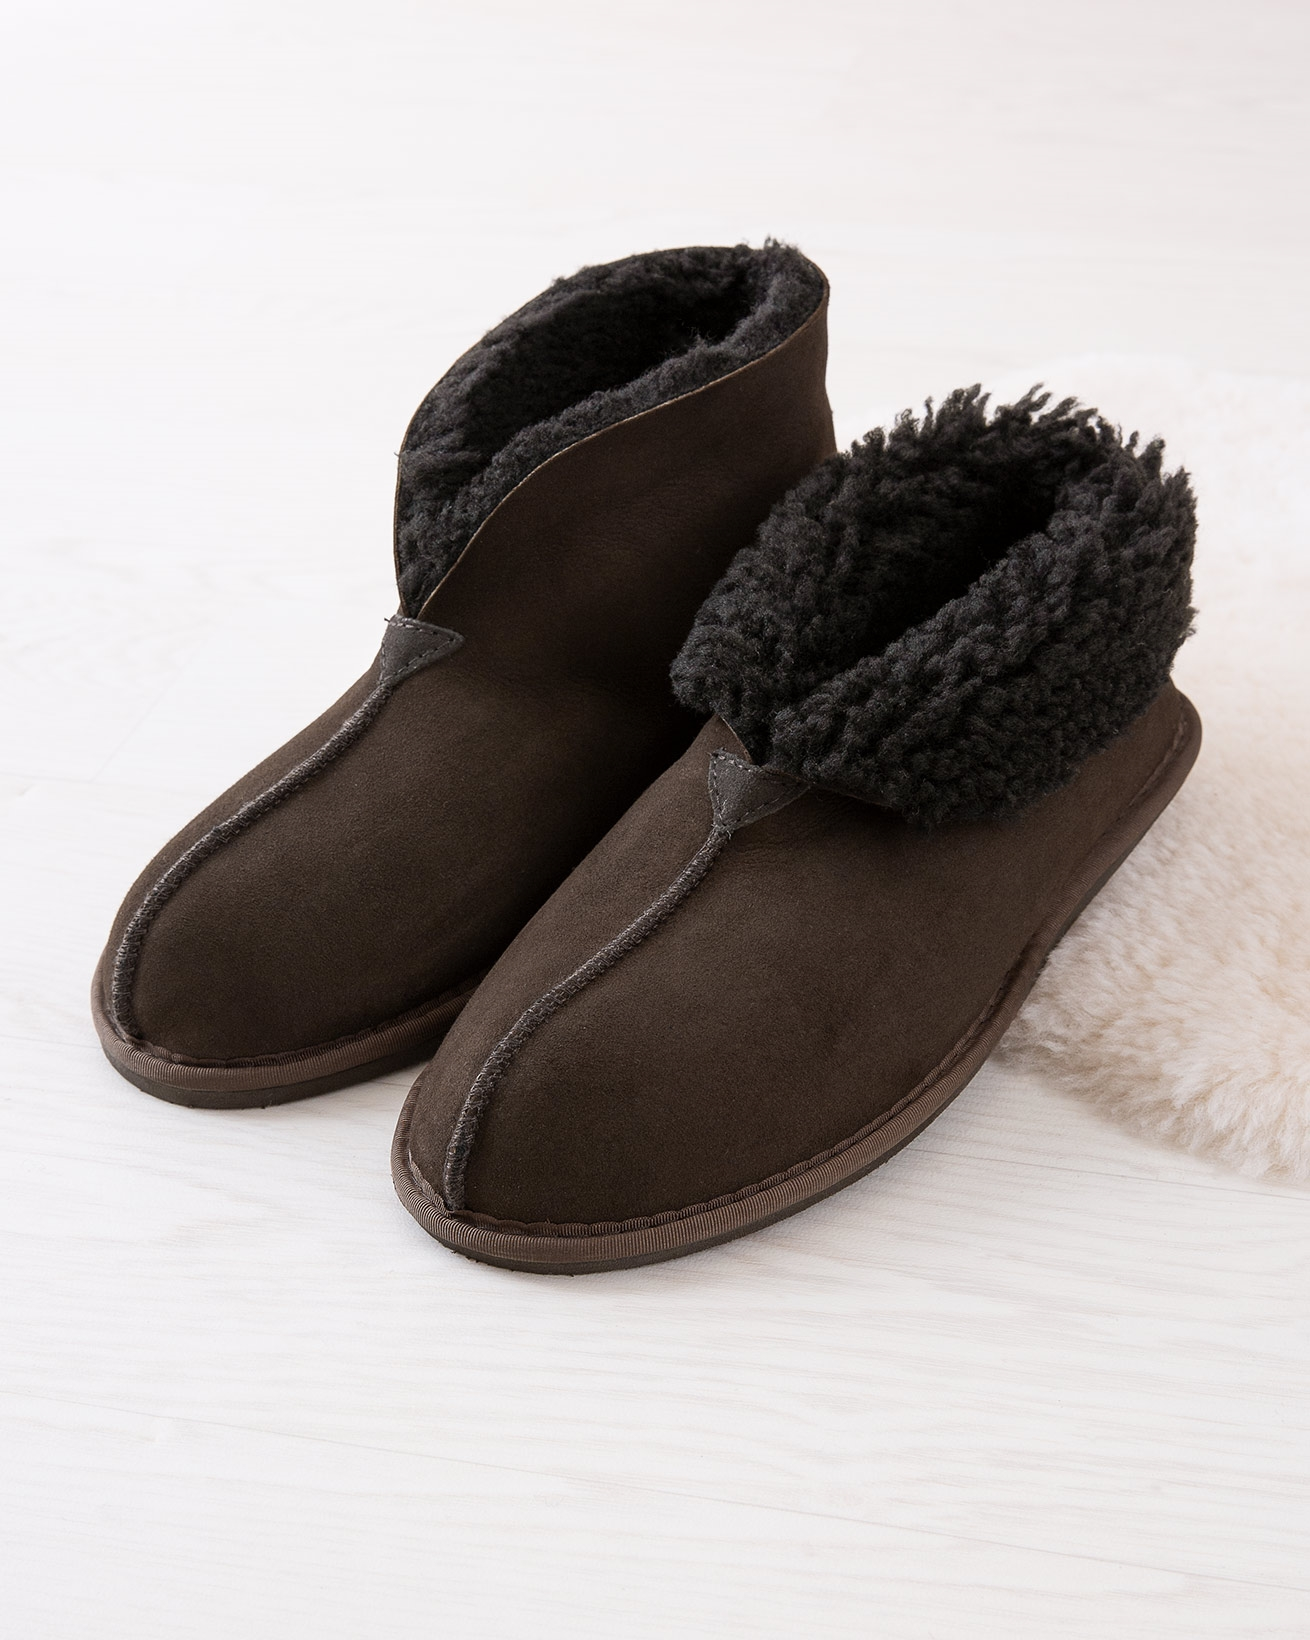 6618_mens-sheepskin-bootee-slippers_mocca_lifestyle_lfs.jpg